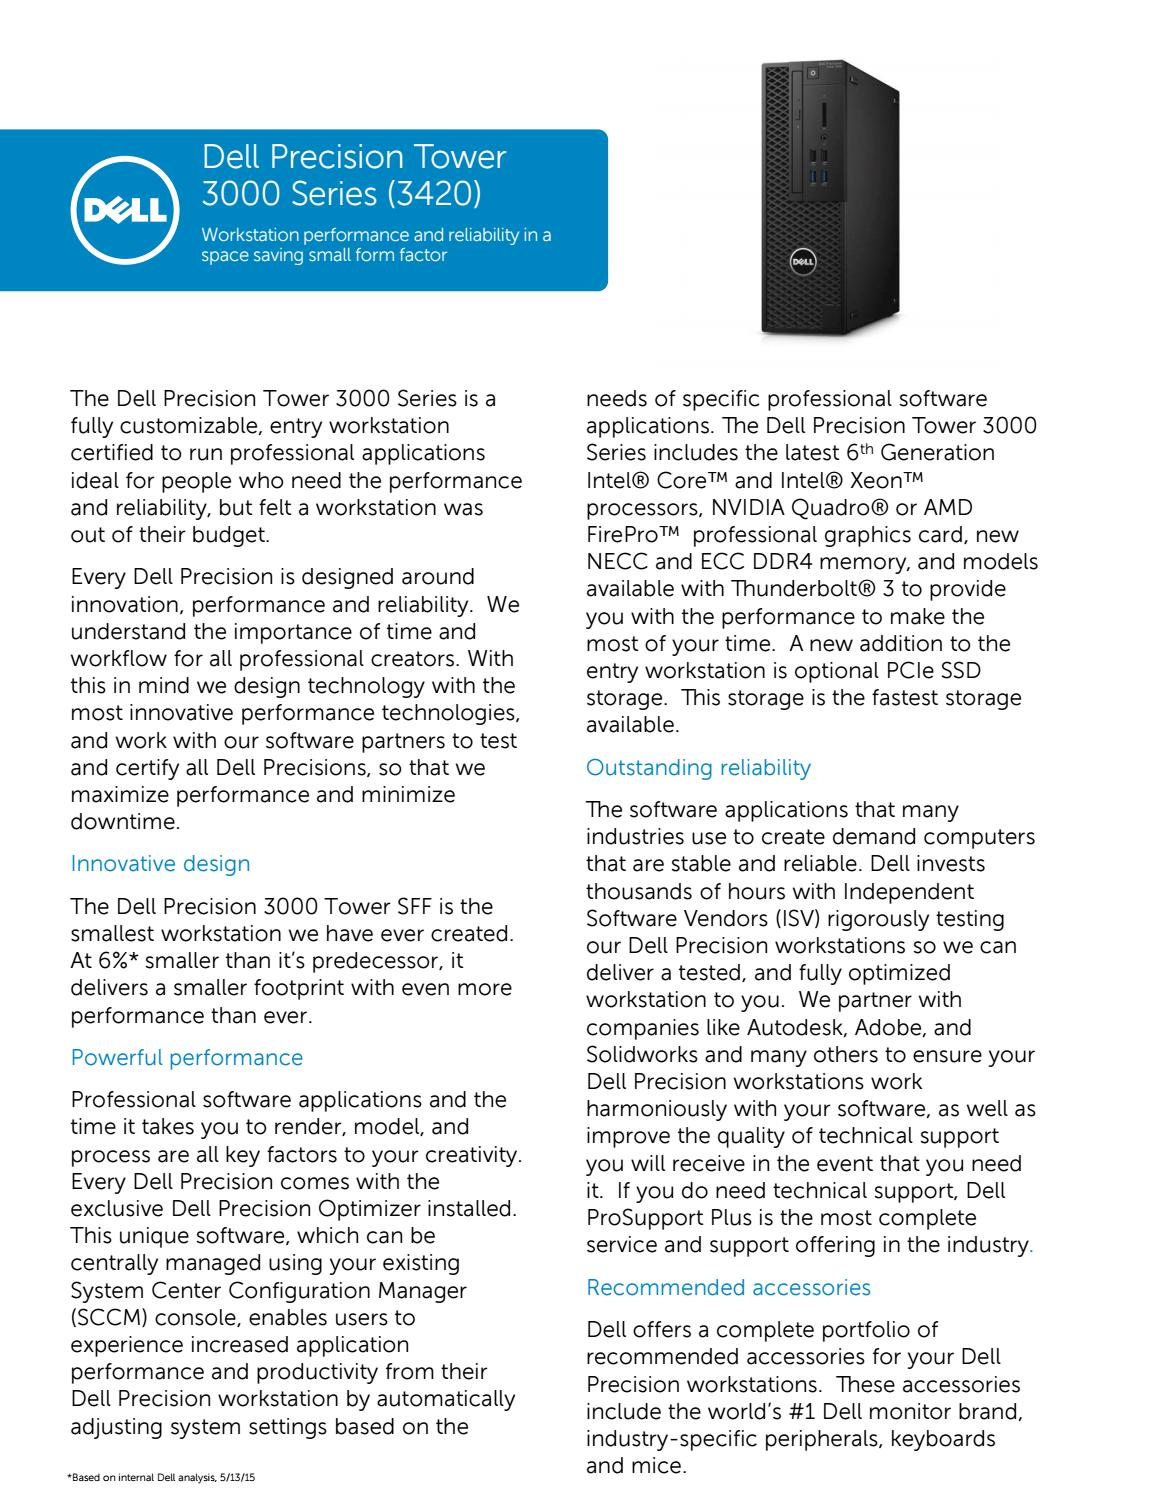 Dell precision tower 3420 Specifications by Sithisak